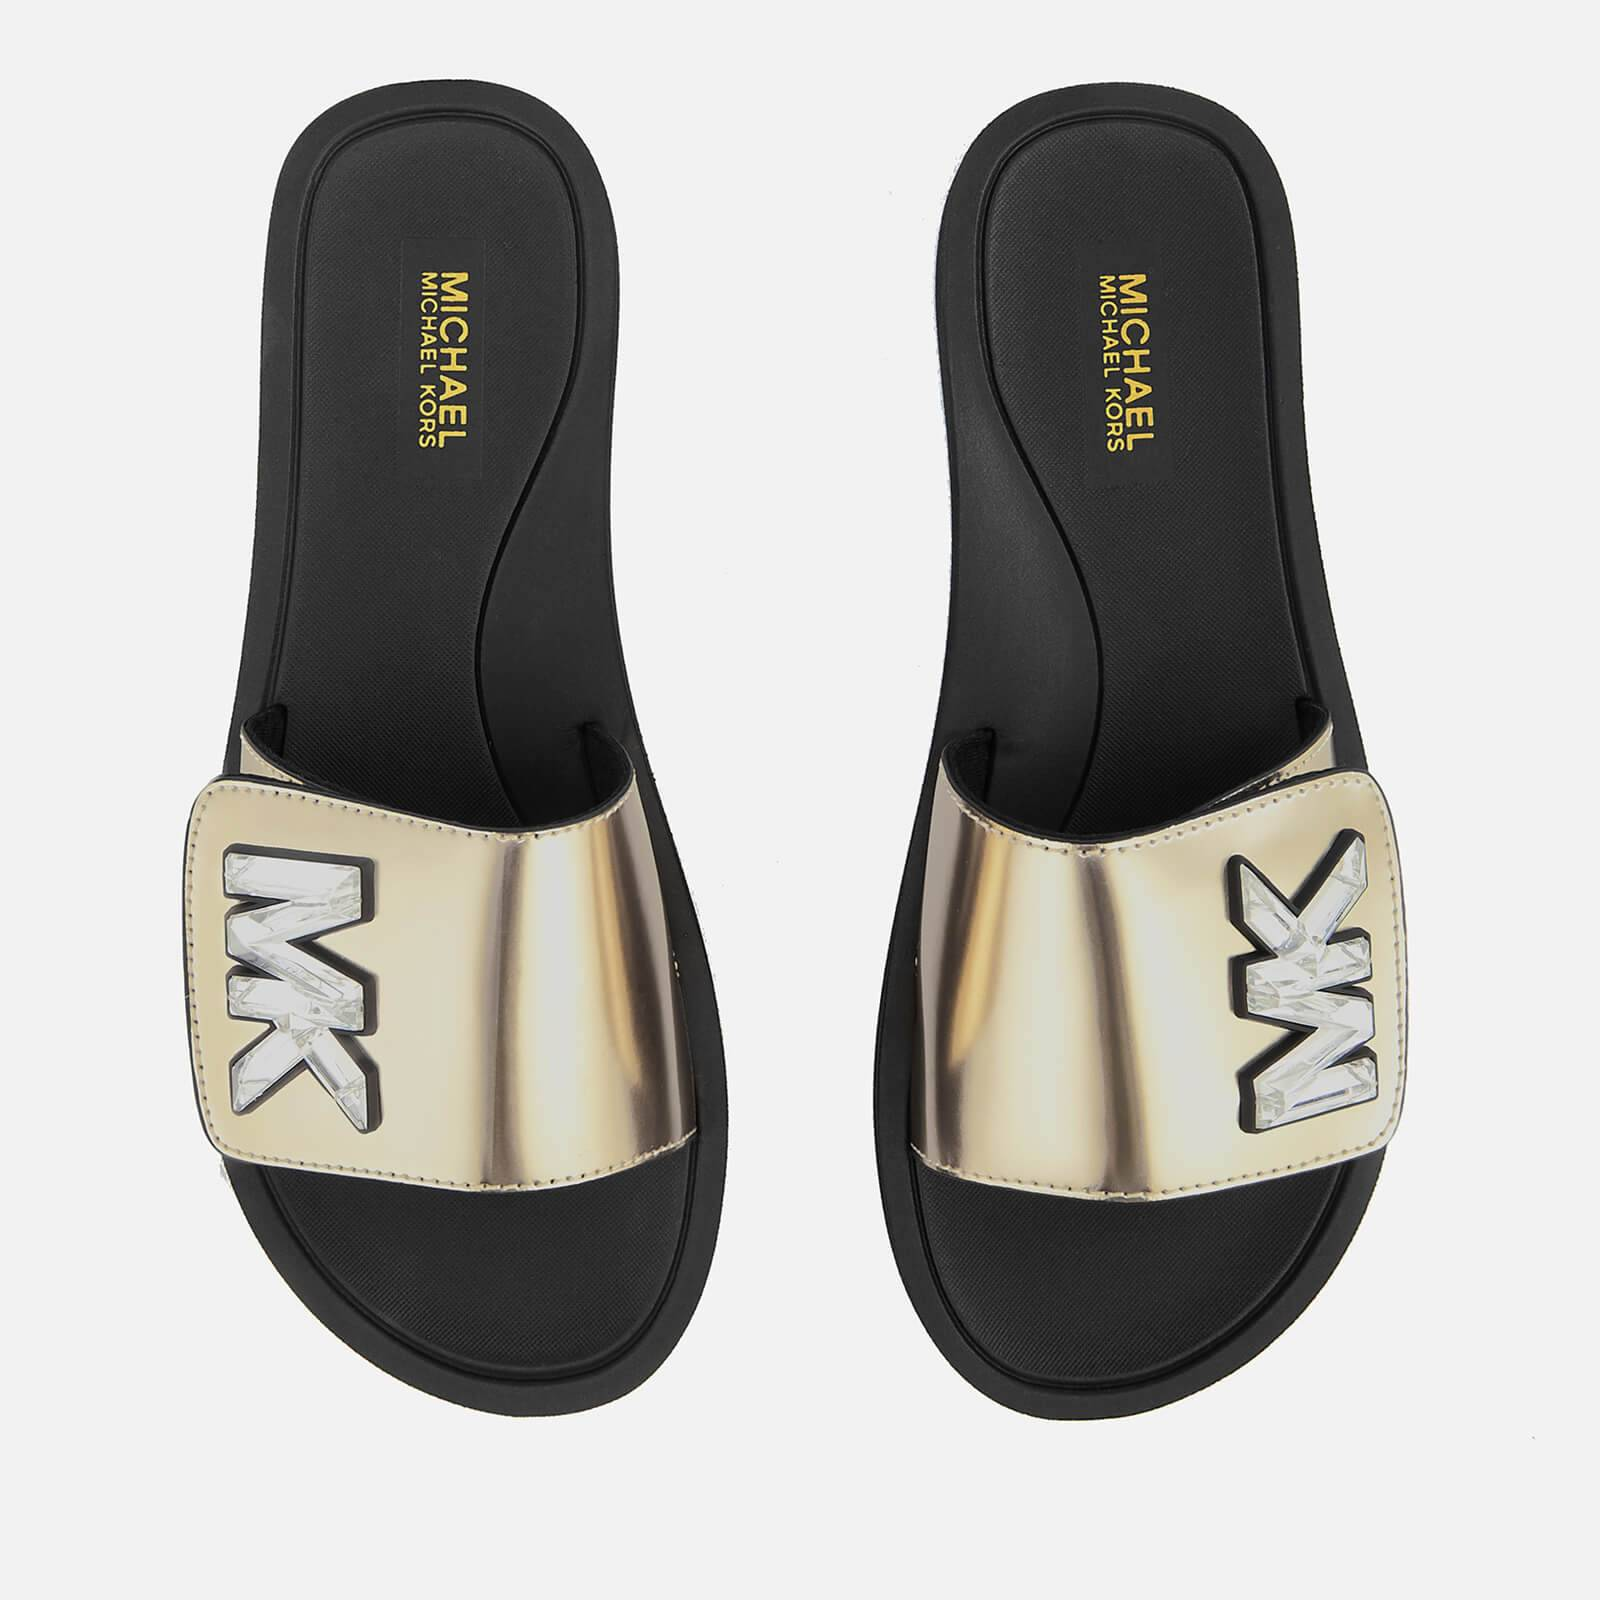 MICHAEL MICHAEL KORS Women's MK Slide Sandals - Pale Gold - UK 4/US 7 - Gold